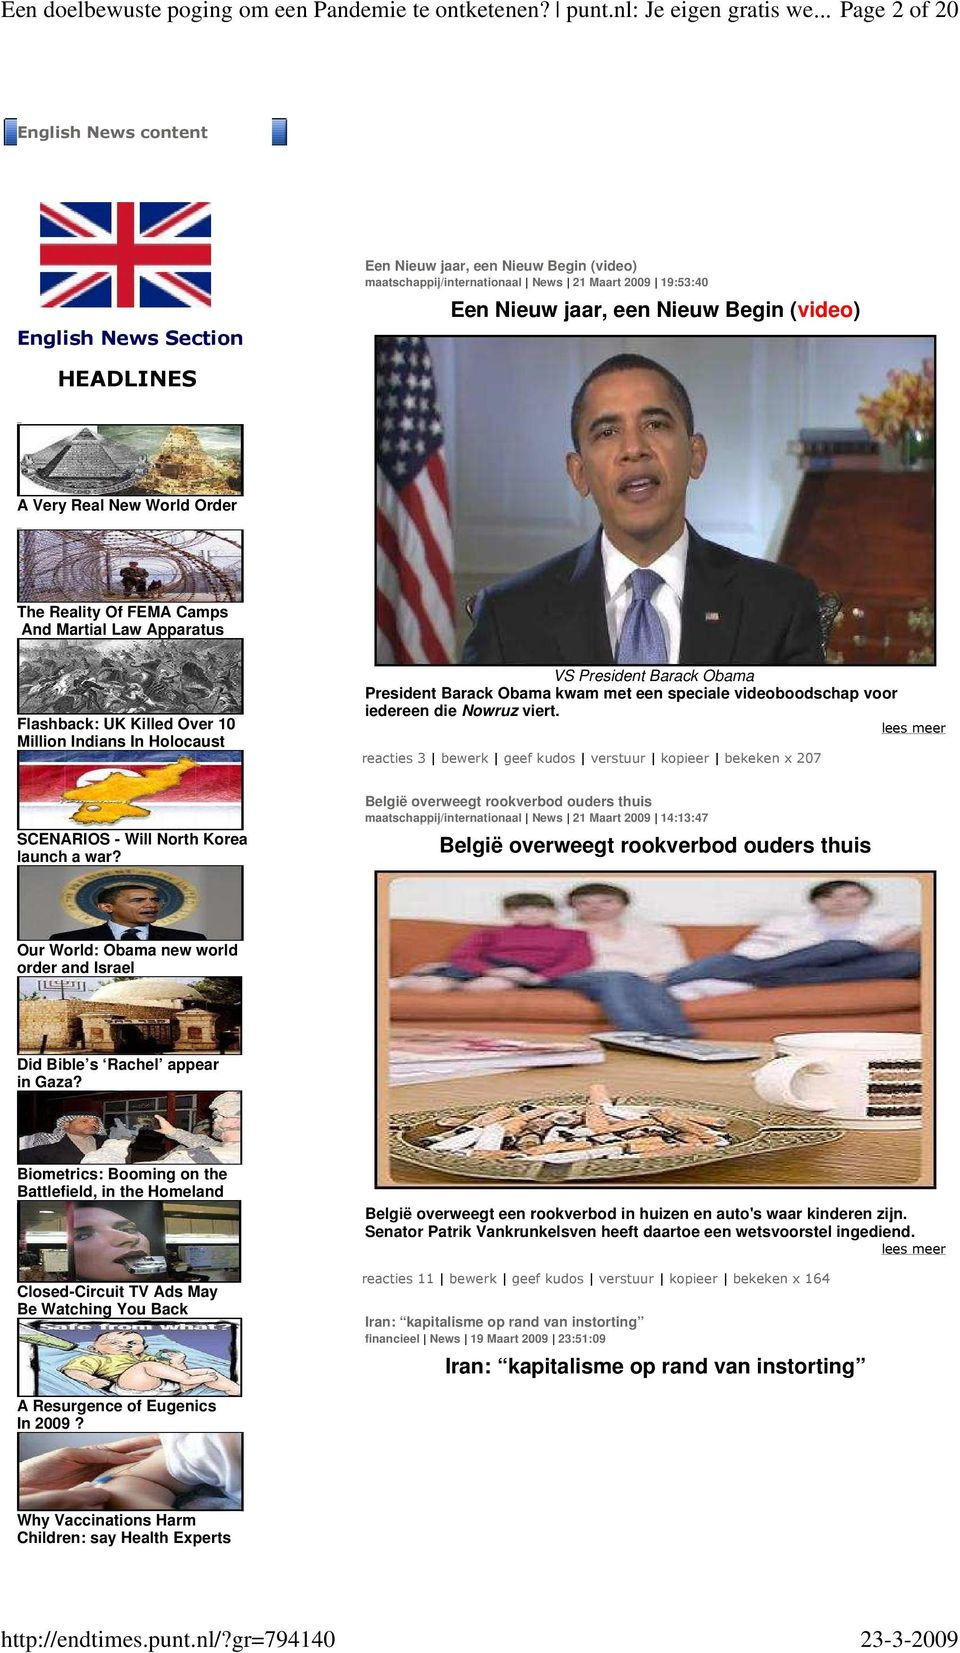 HEADLINES A Very Real New World Order The Reality Of FEMA Camps And Martial Law Apparatus Flashback: UK Killed Over 10 Million Indians In Holocaust VS President Barack Obama President Barack Obama